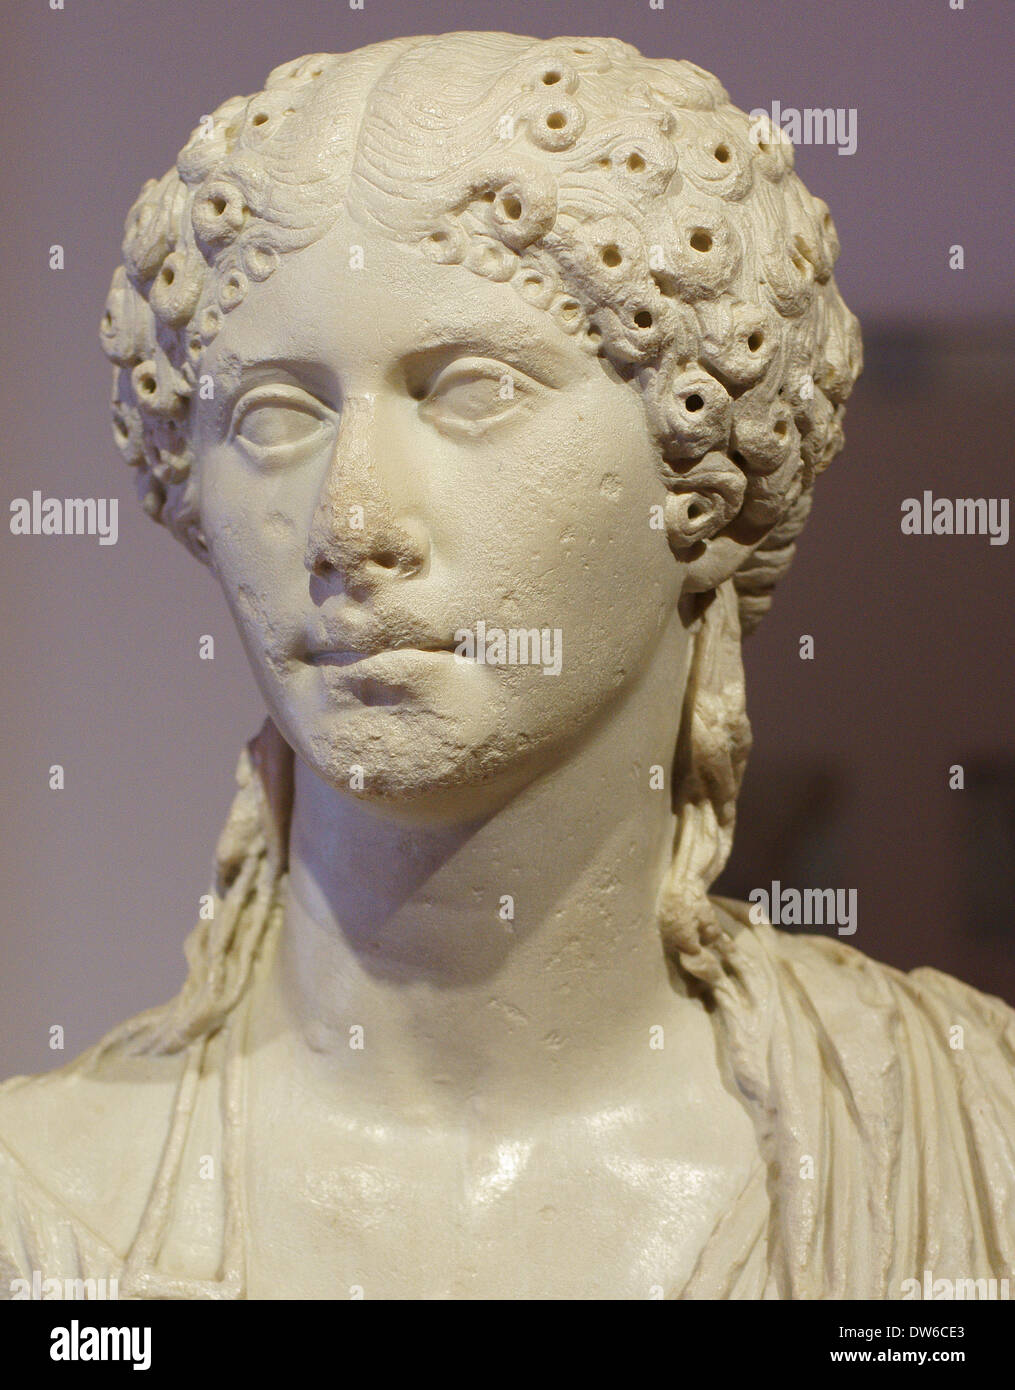 Agrippina minor younger mother of emperor Nero - Stock Image